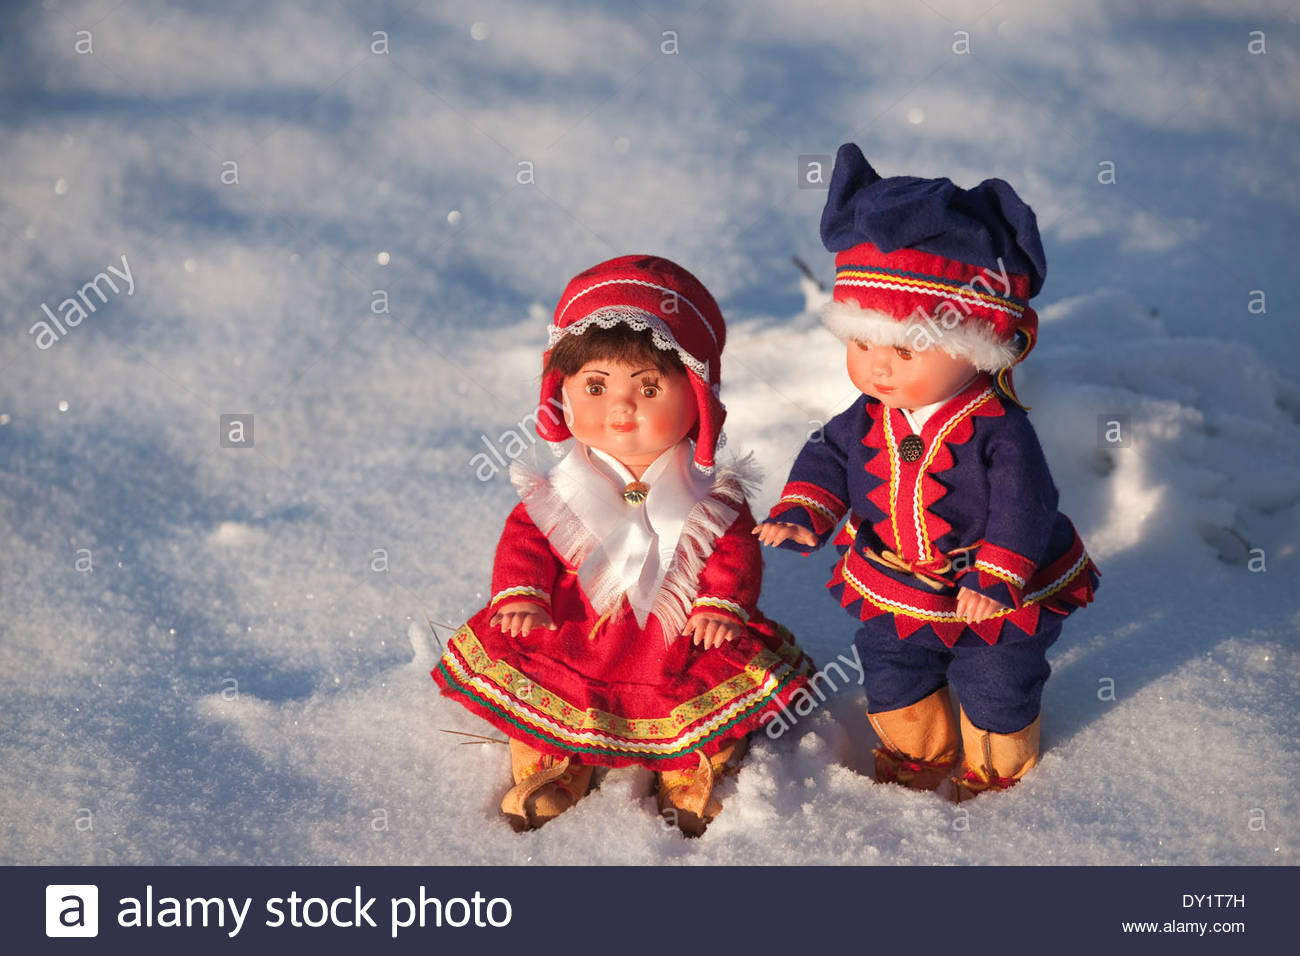 sami people stockfotos sami people bilder alamy. Black Bedroom Furniture Sets. Home Design Ideas